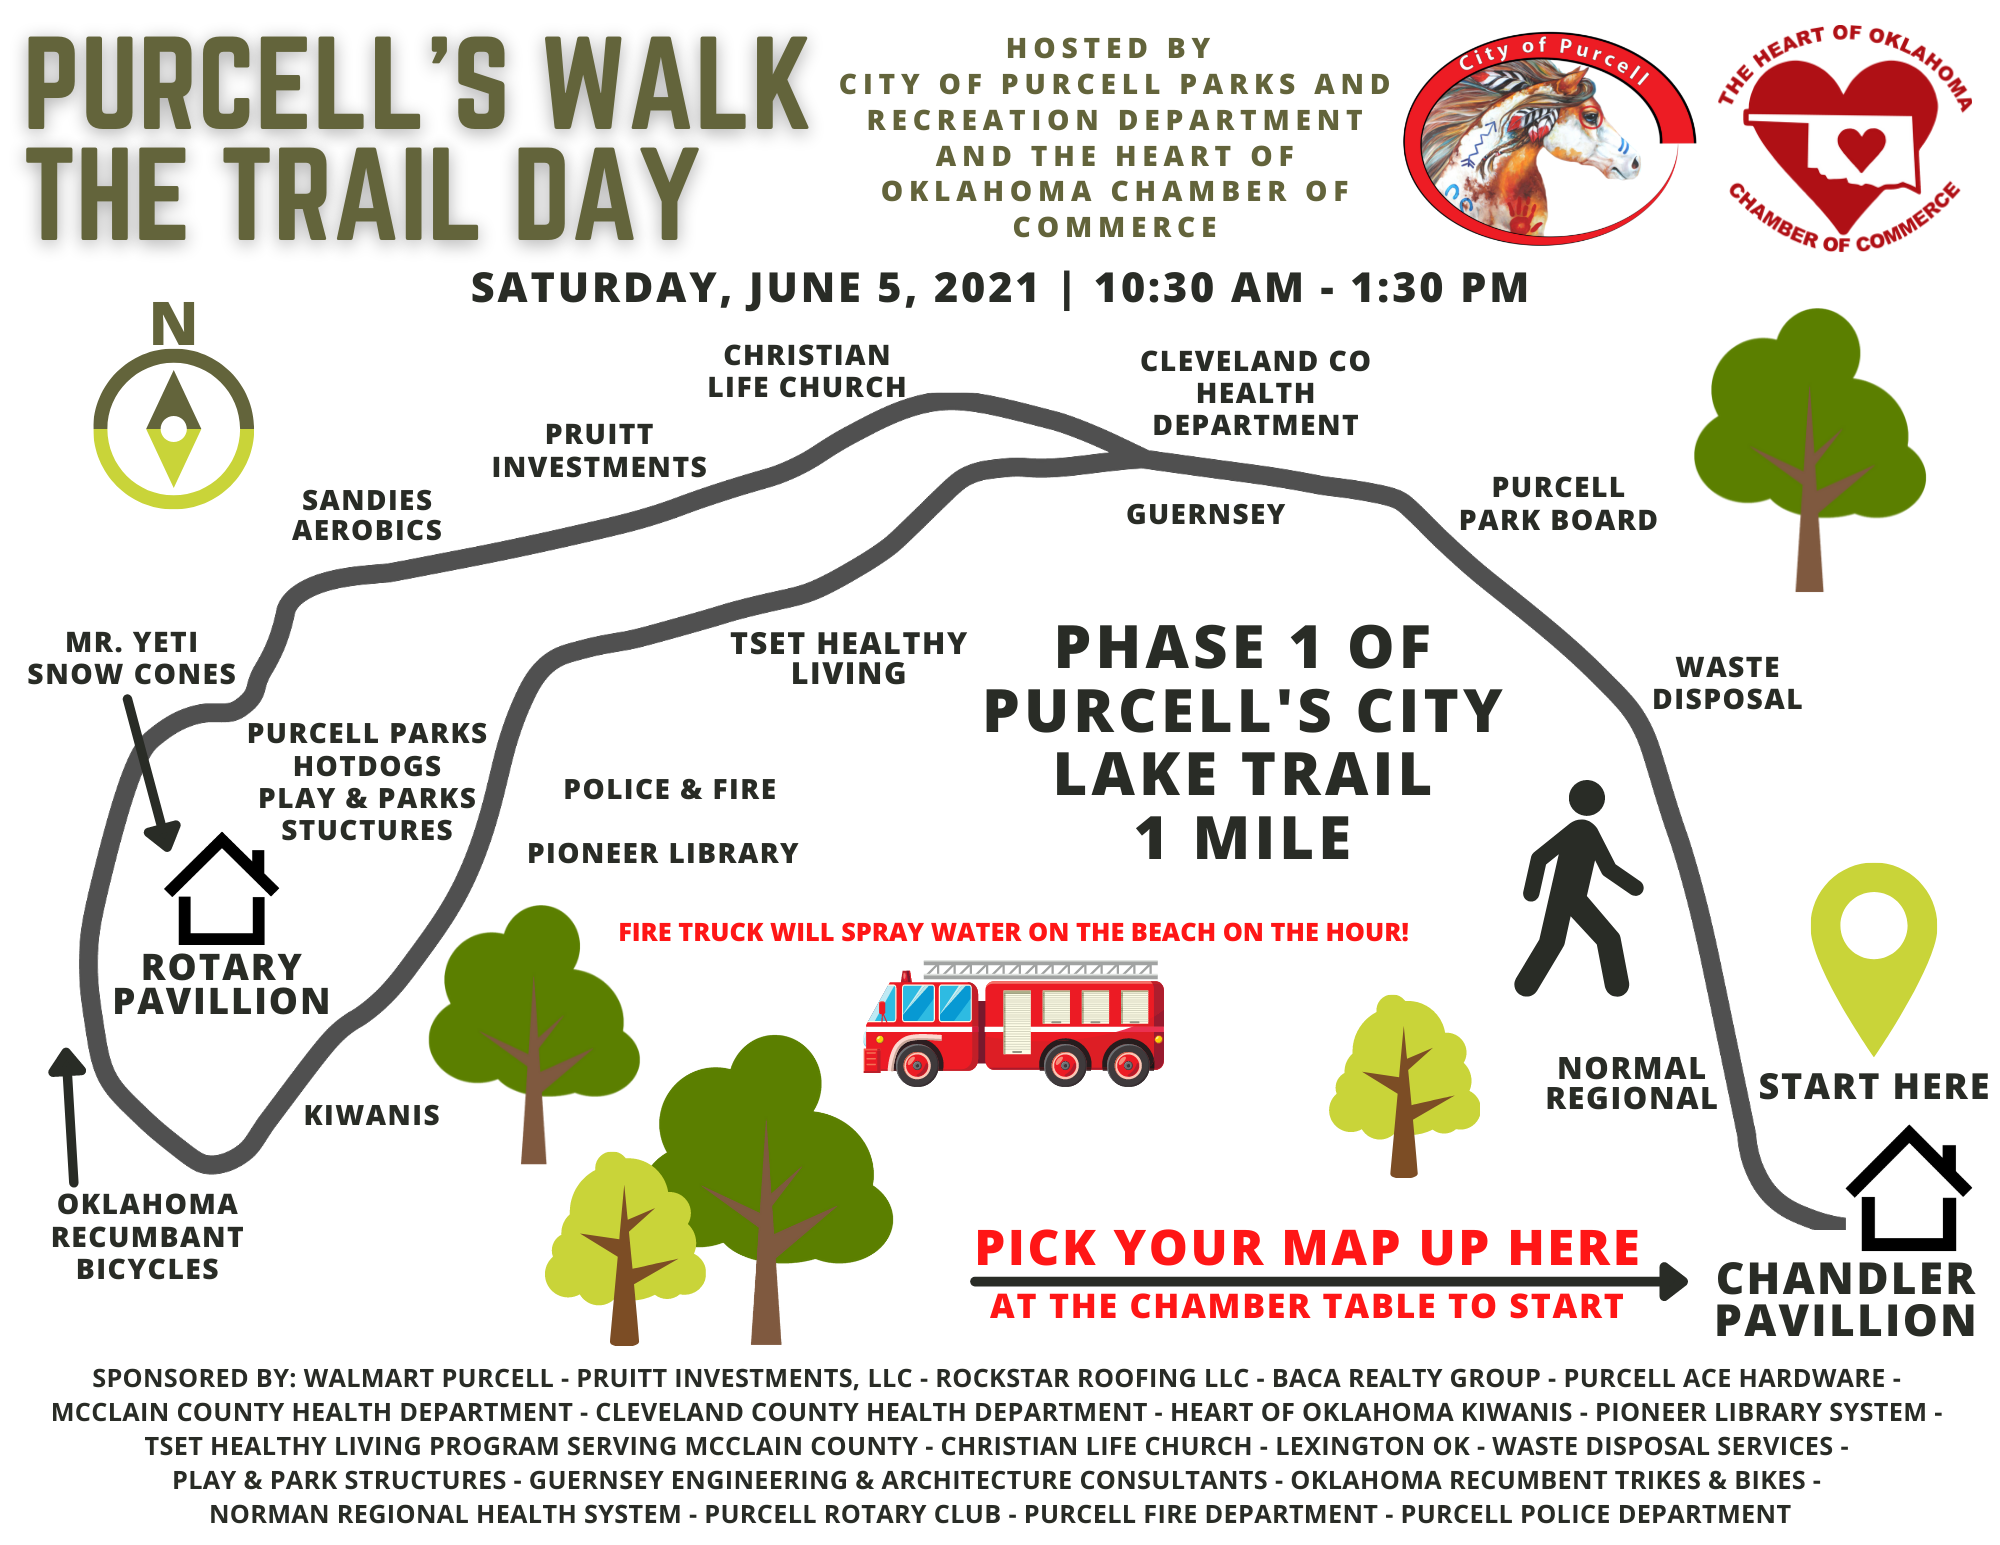 walk-the-trail-day-collectors-map-(1).png